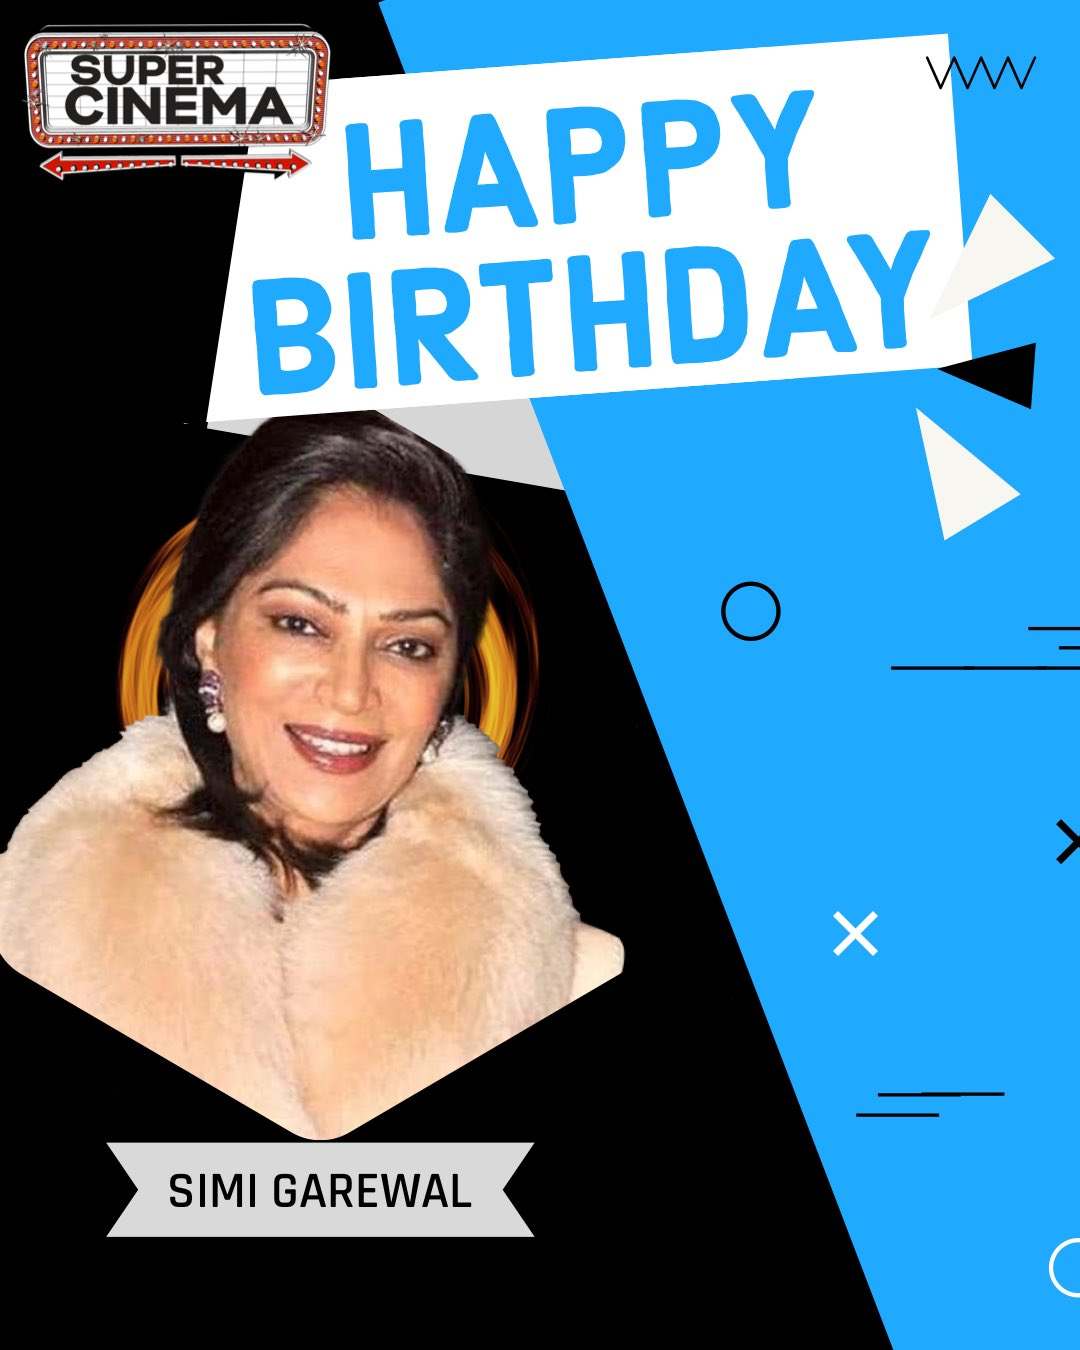 Here s wishing a very happy birthday to